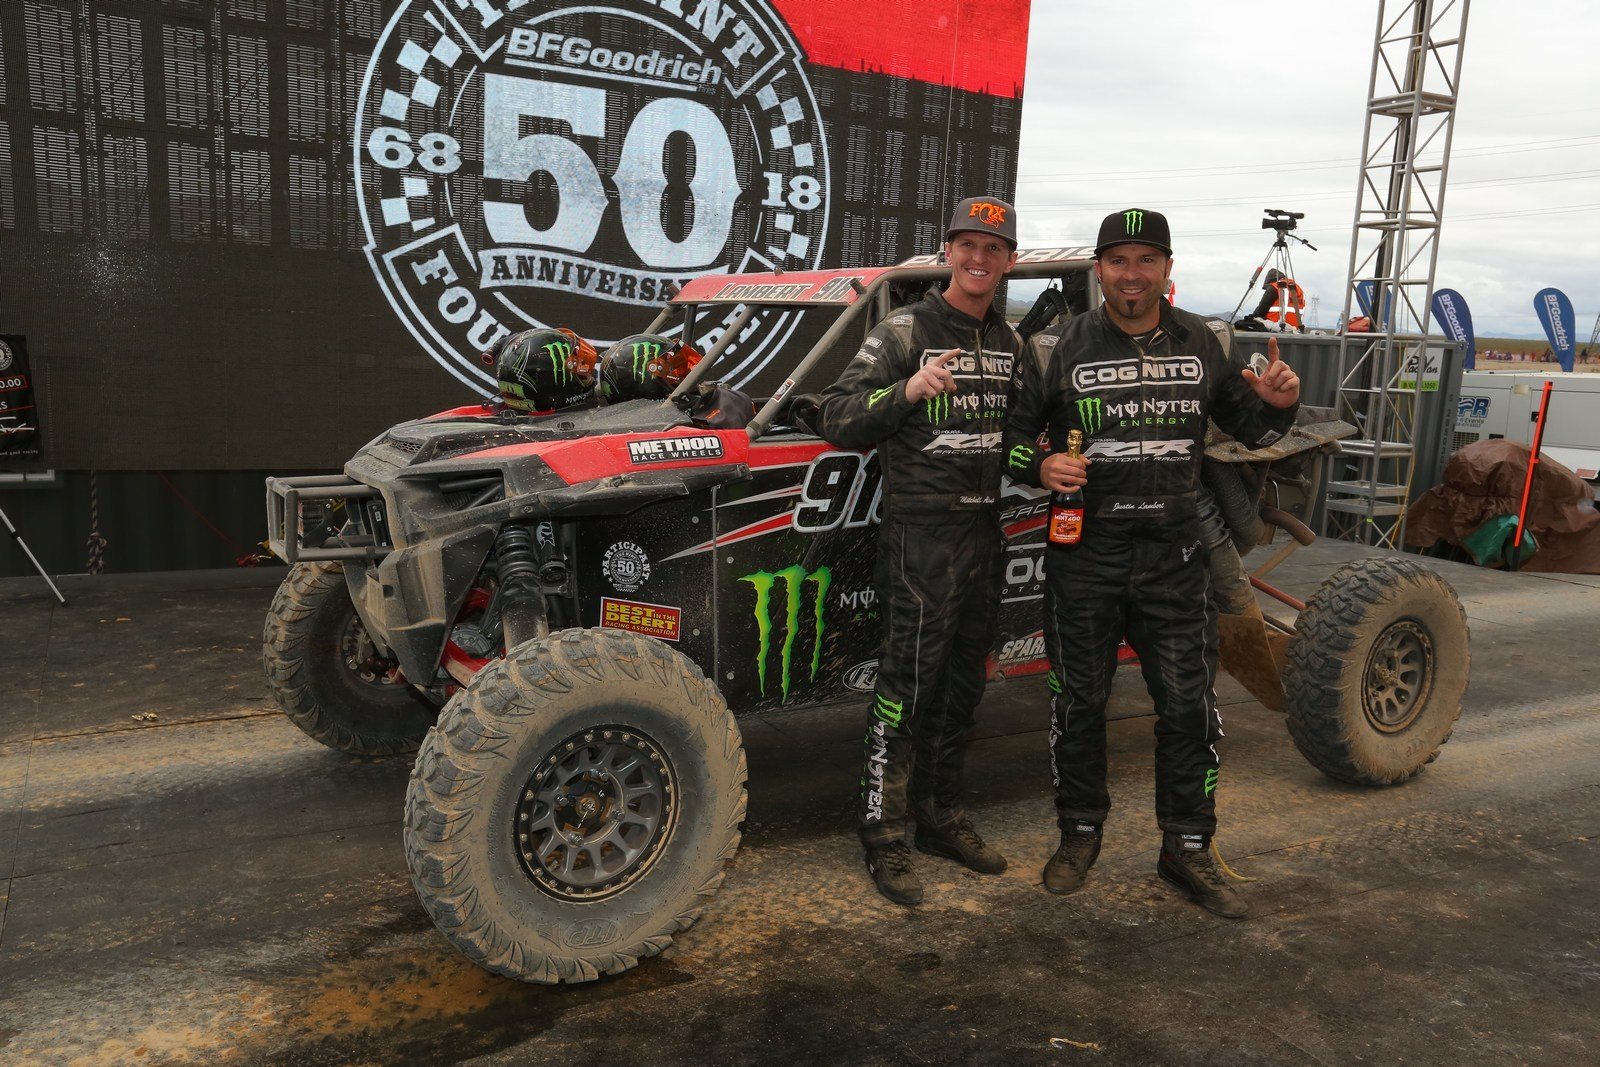 Polaris Rzr Factory Racing Continues 2018 Success With Victories In All Three Utv Cles At The 50th Anniversary Mint 400 Business Wire